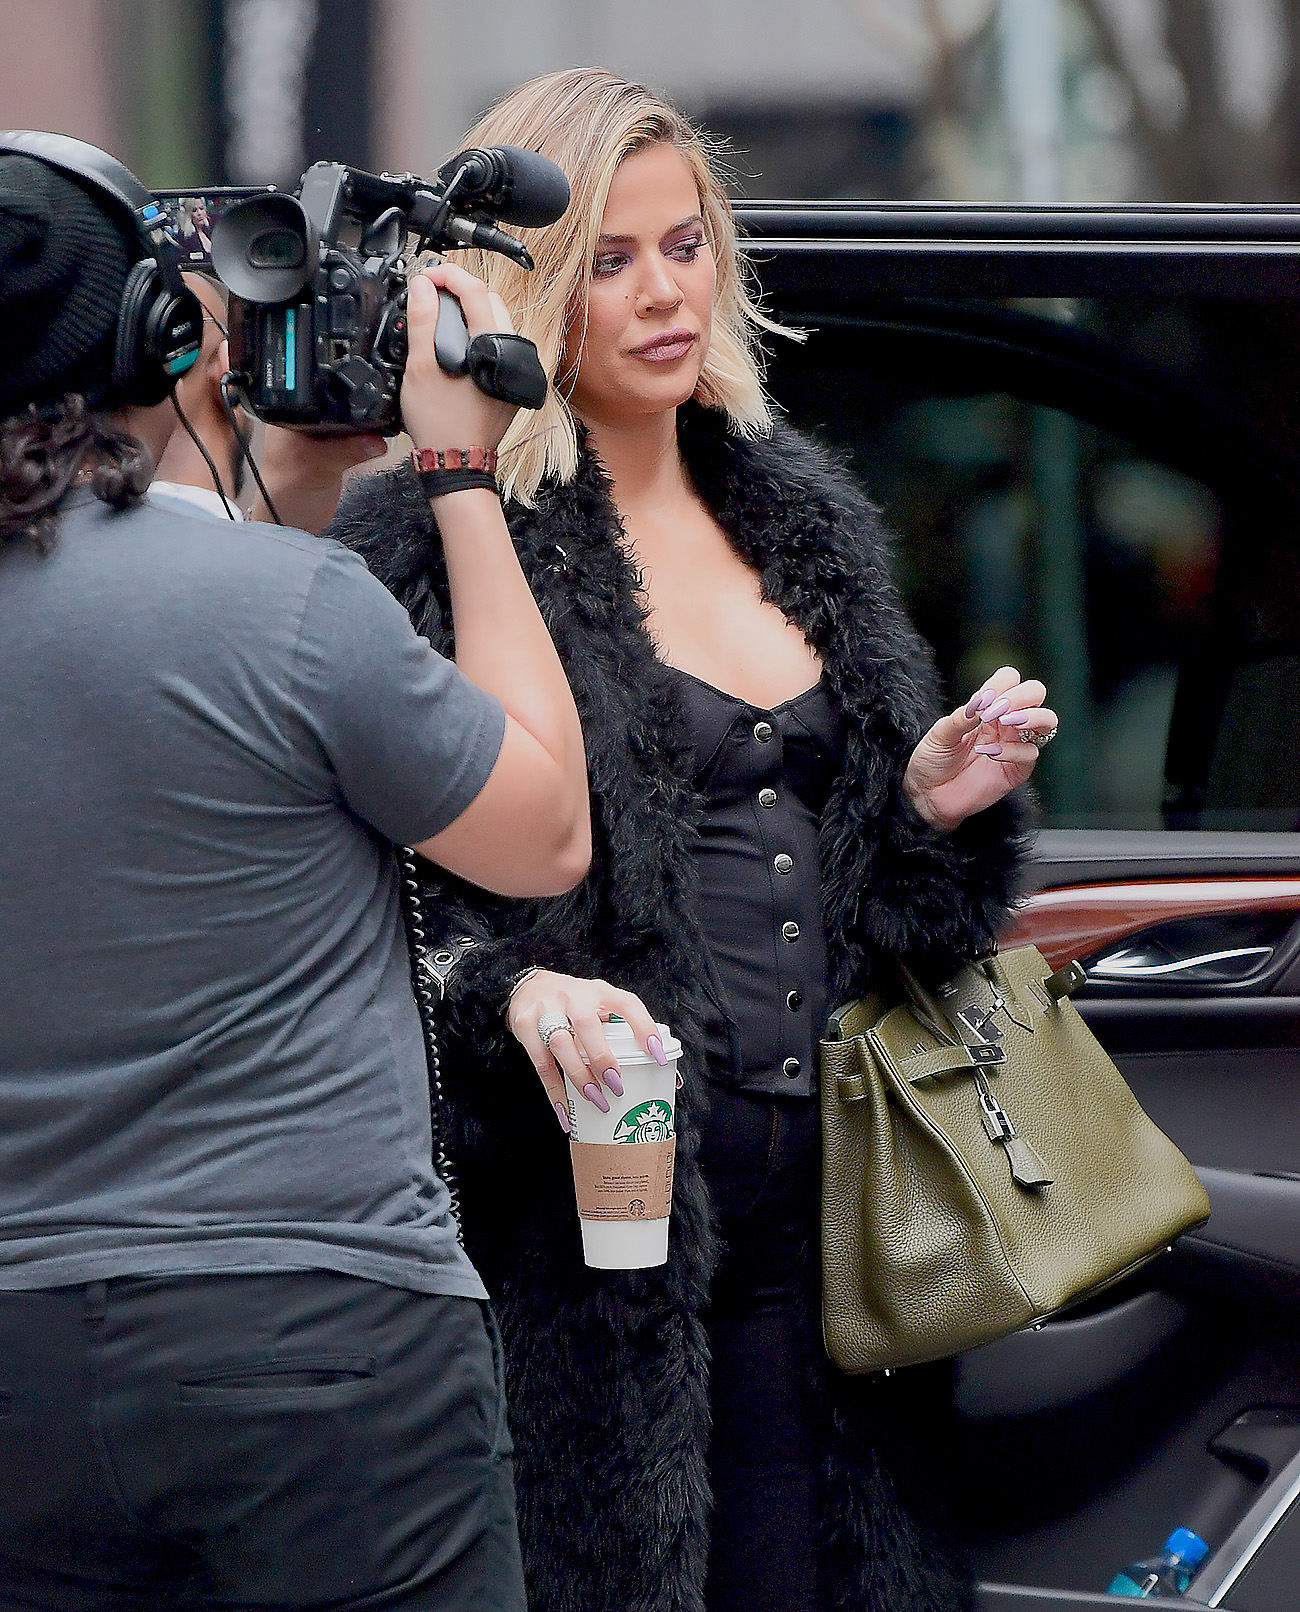 PHOTOS | October 26, 2017 – Khloe out and about in New York City!